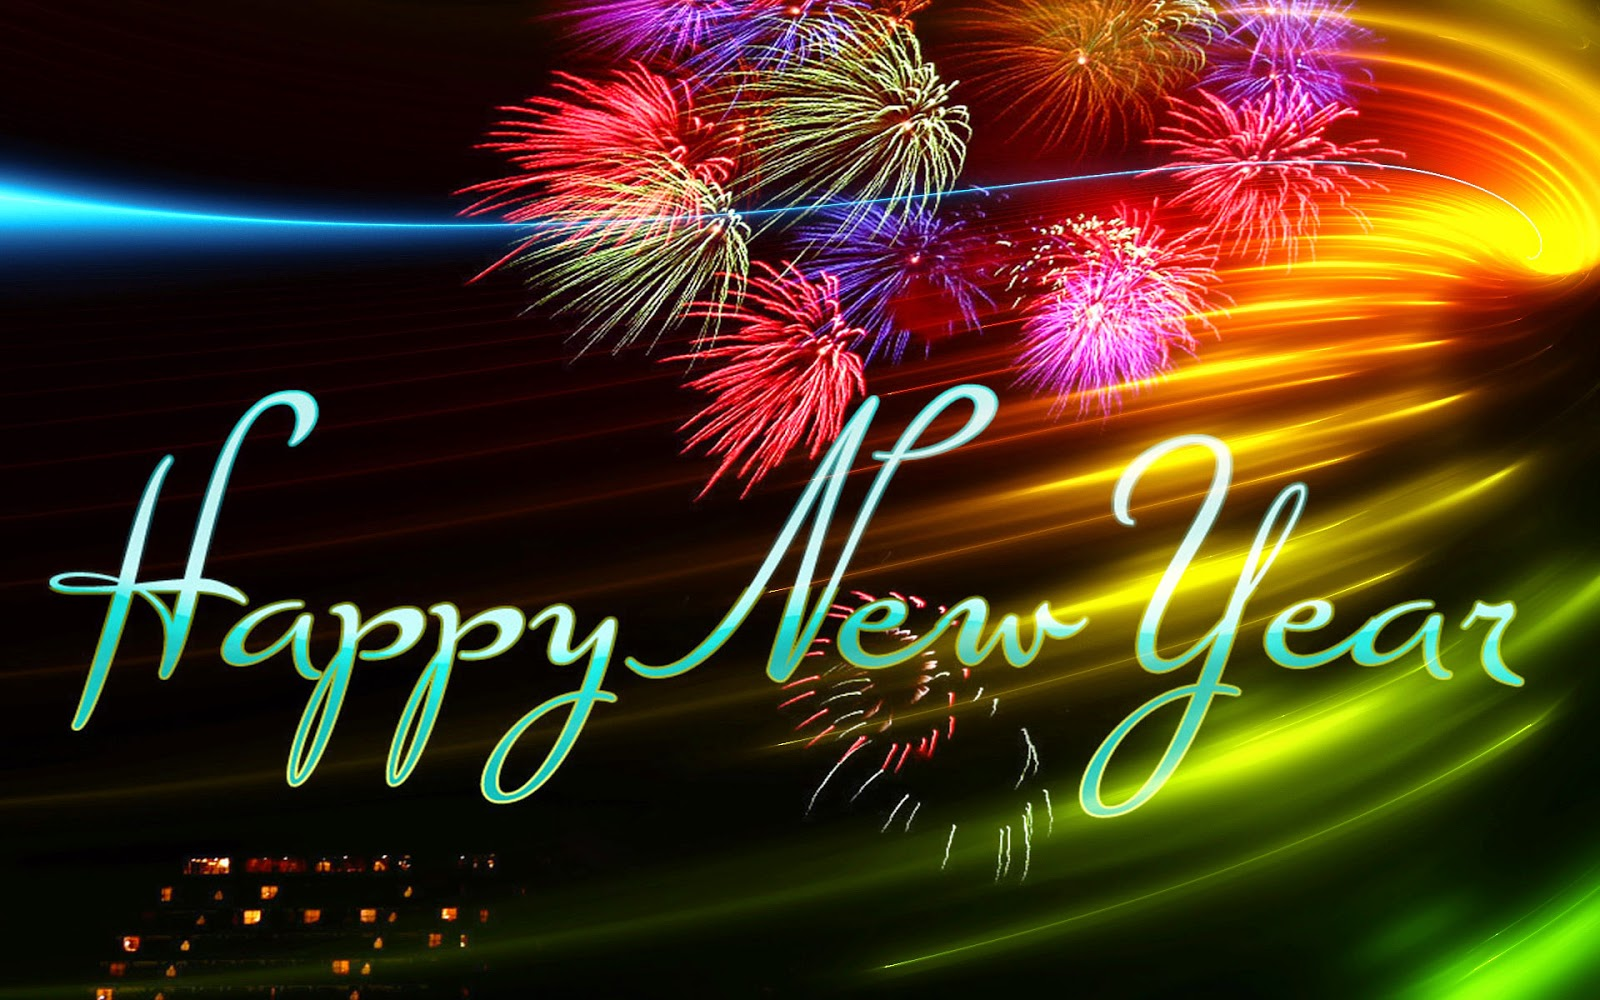 Happy new year greetings with animated images 2018 christmas happy new year greetings with animated images 2018 kristyandbryce Gallery